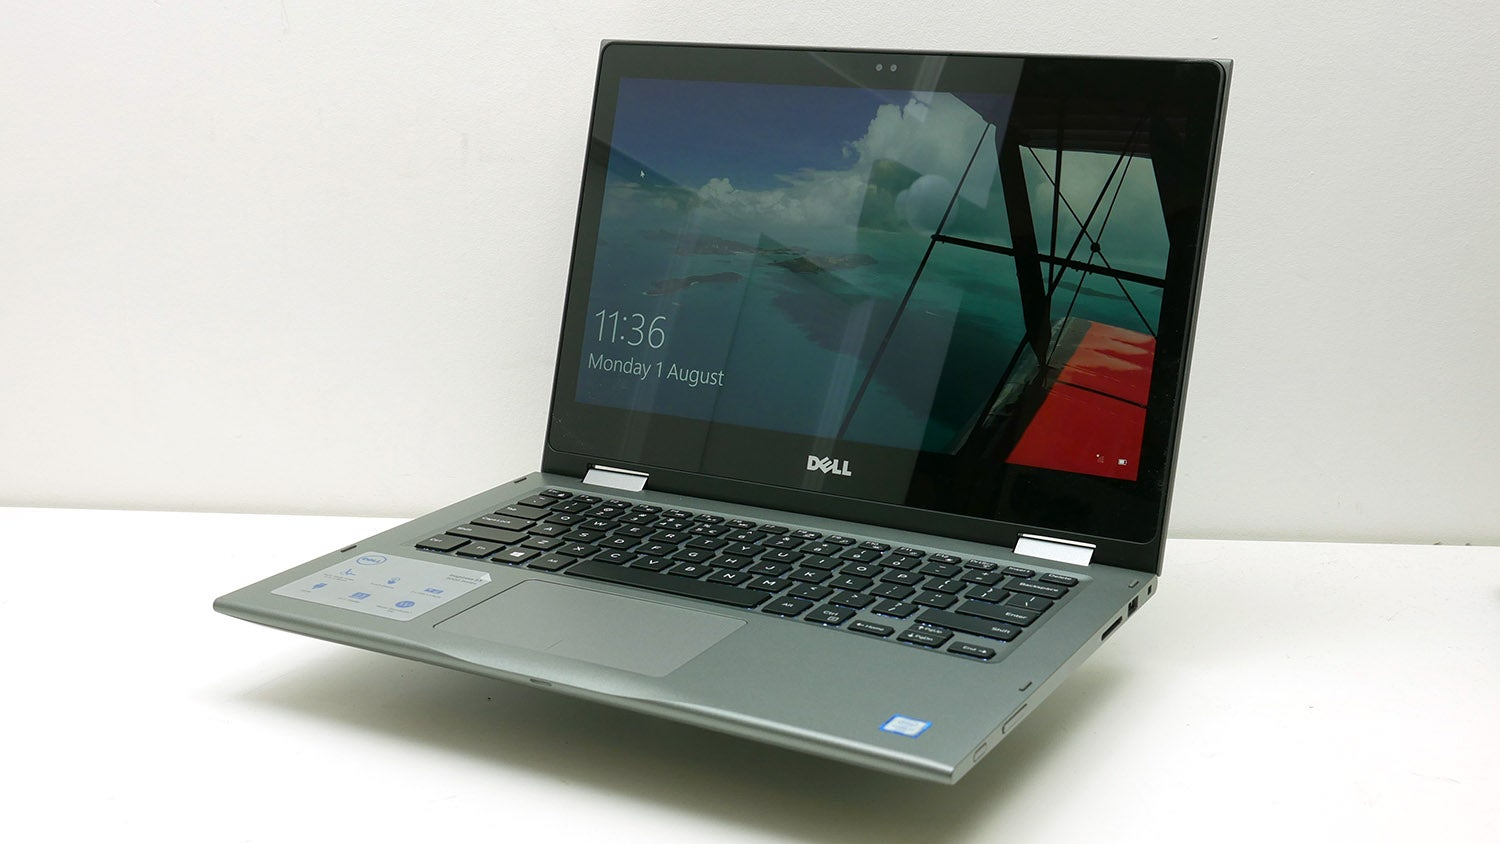 Dell Inspiron 13 5000 Review | Trusted Reviews